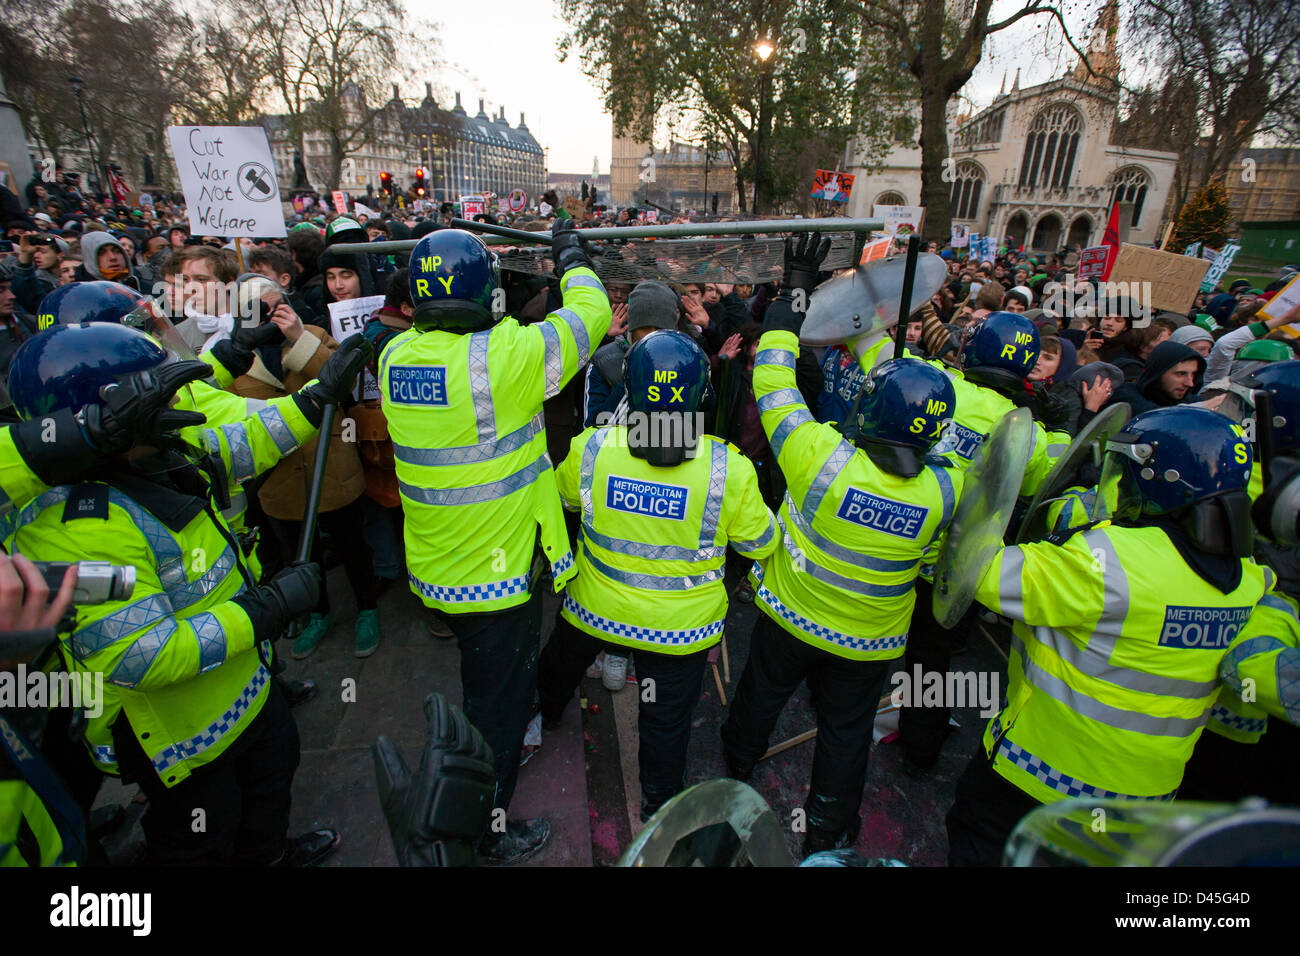 Protesting students attacking a thin line of police in full riot gear with a crowd control barrier, on Broad Sanctuary - Stock Image